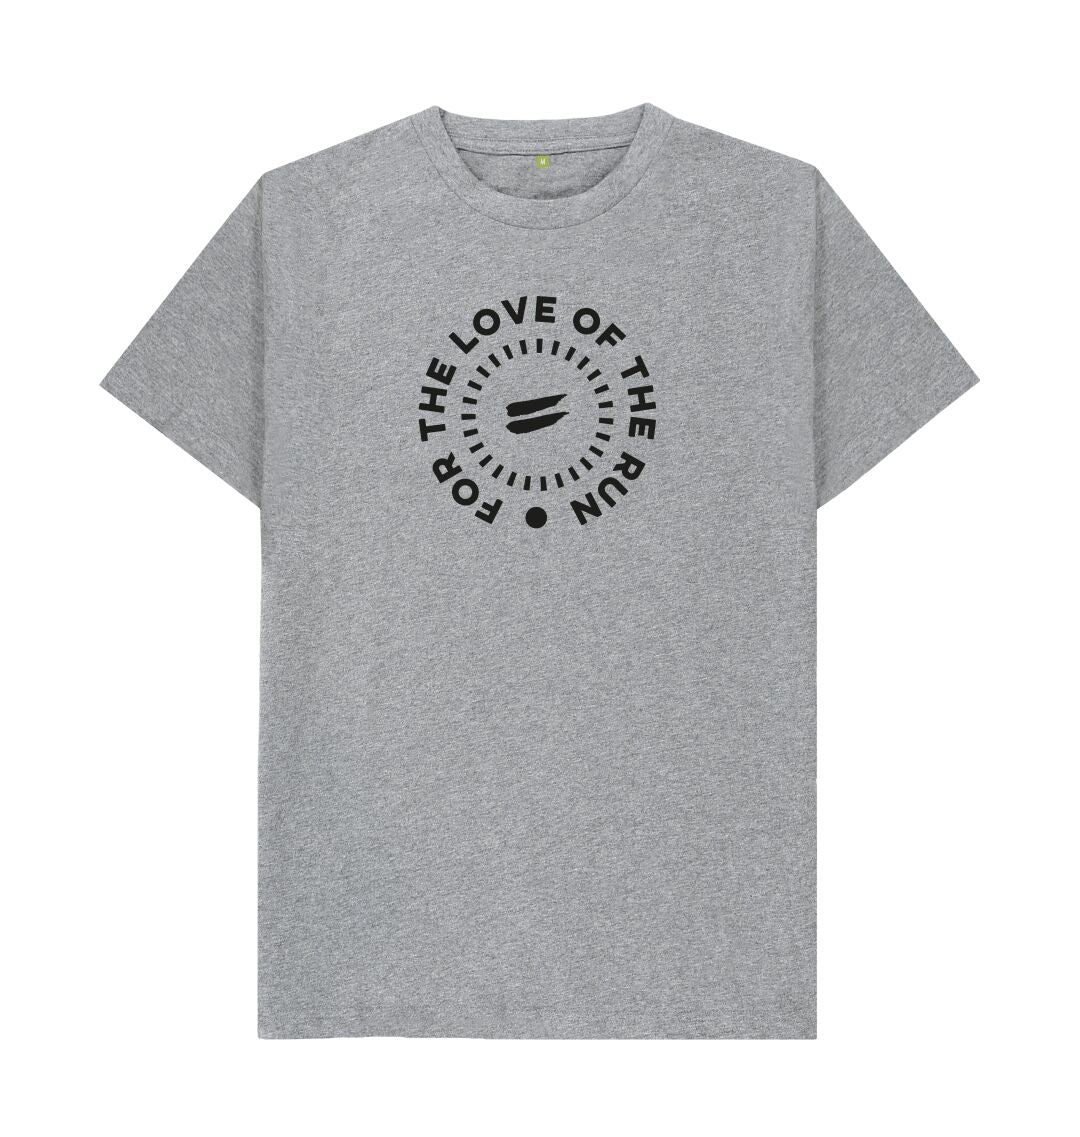 Athletic Grey For the Love of the Run Tee - Men's